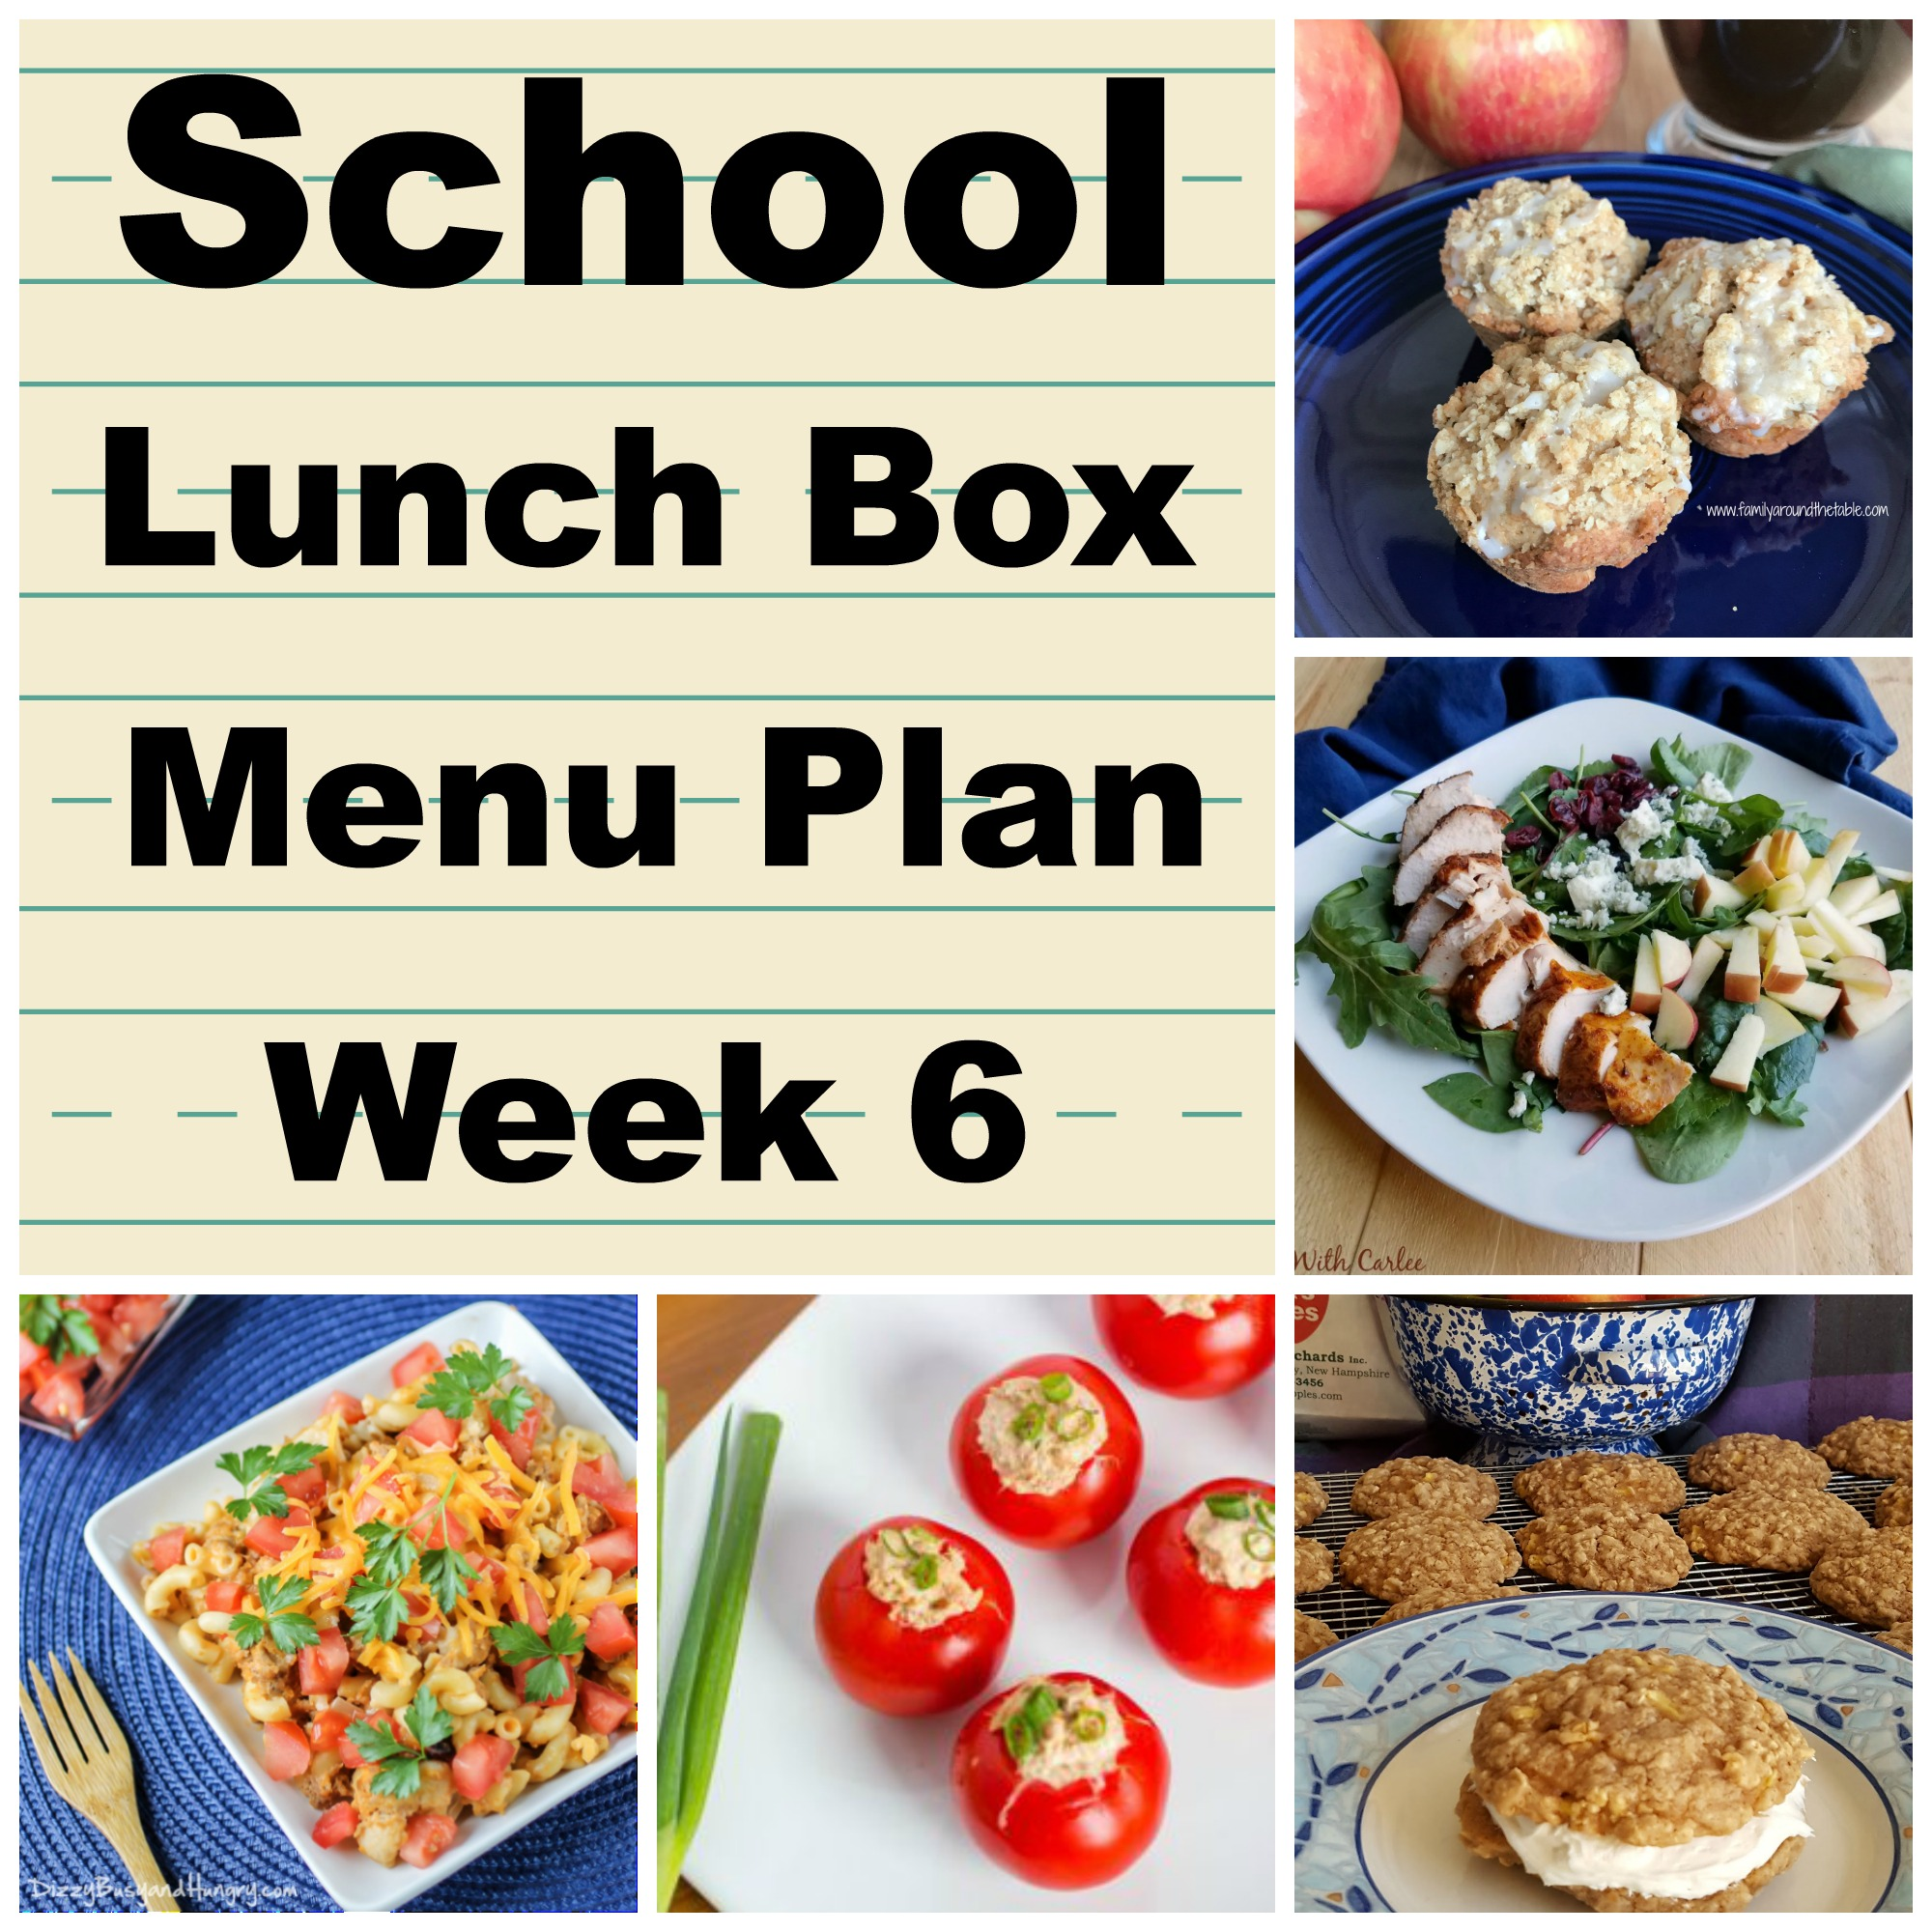 The Week 6 School Lunch Box Menu Plan from Family Around The Table